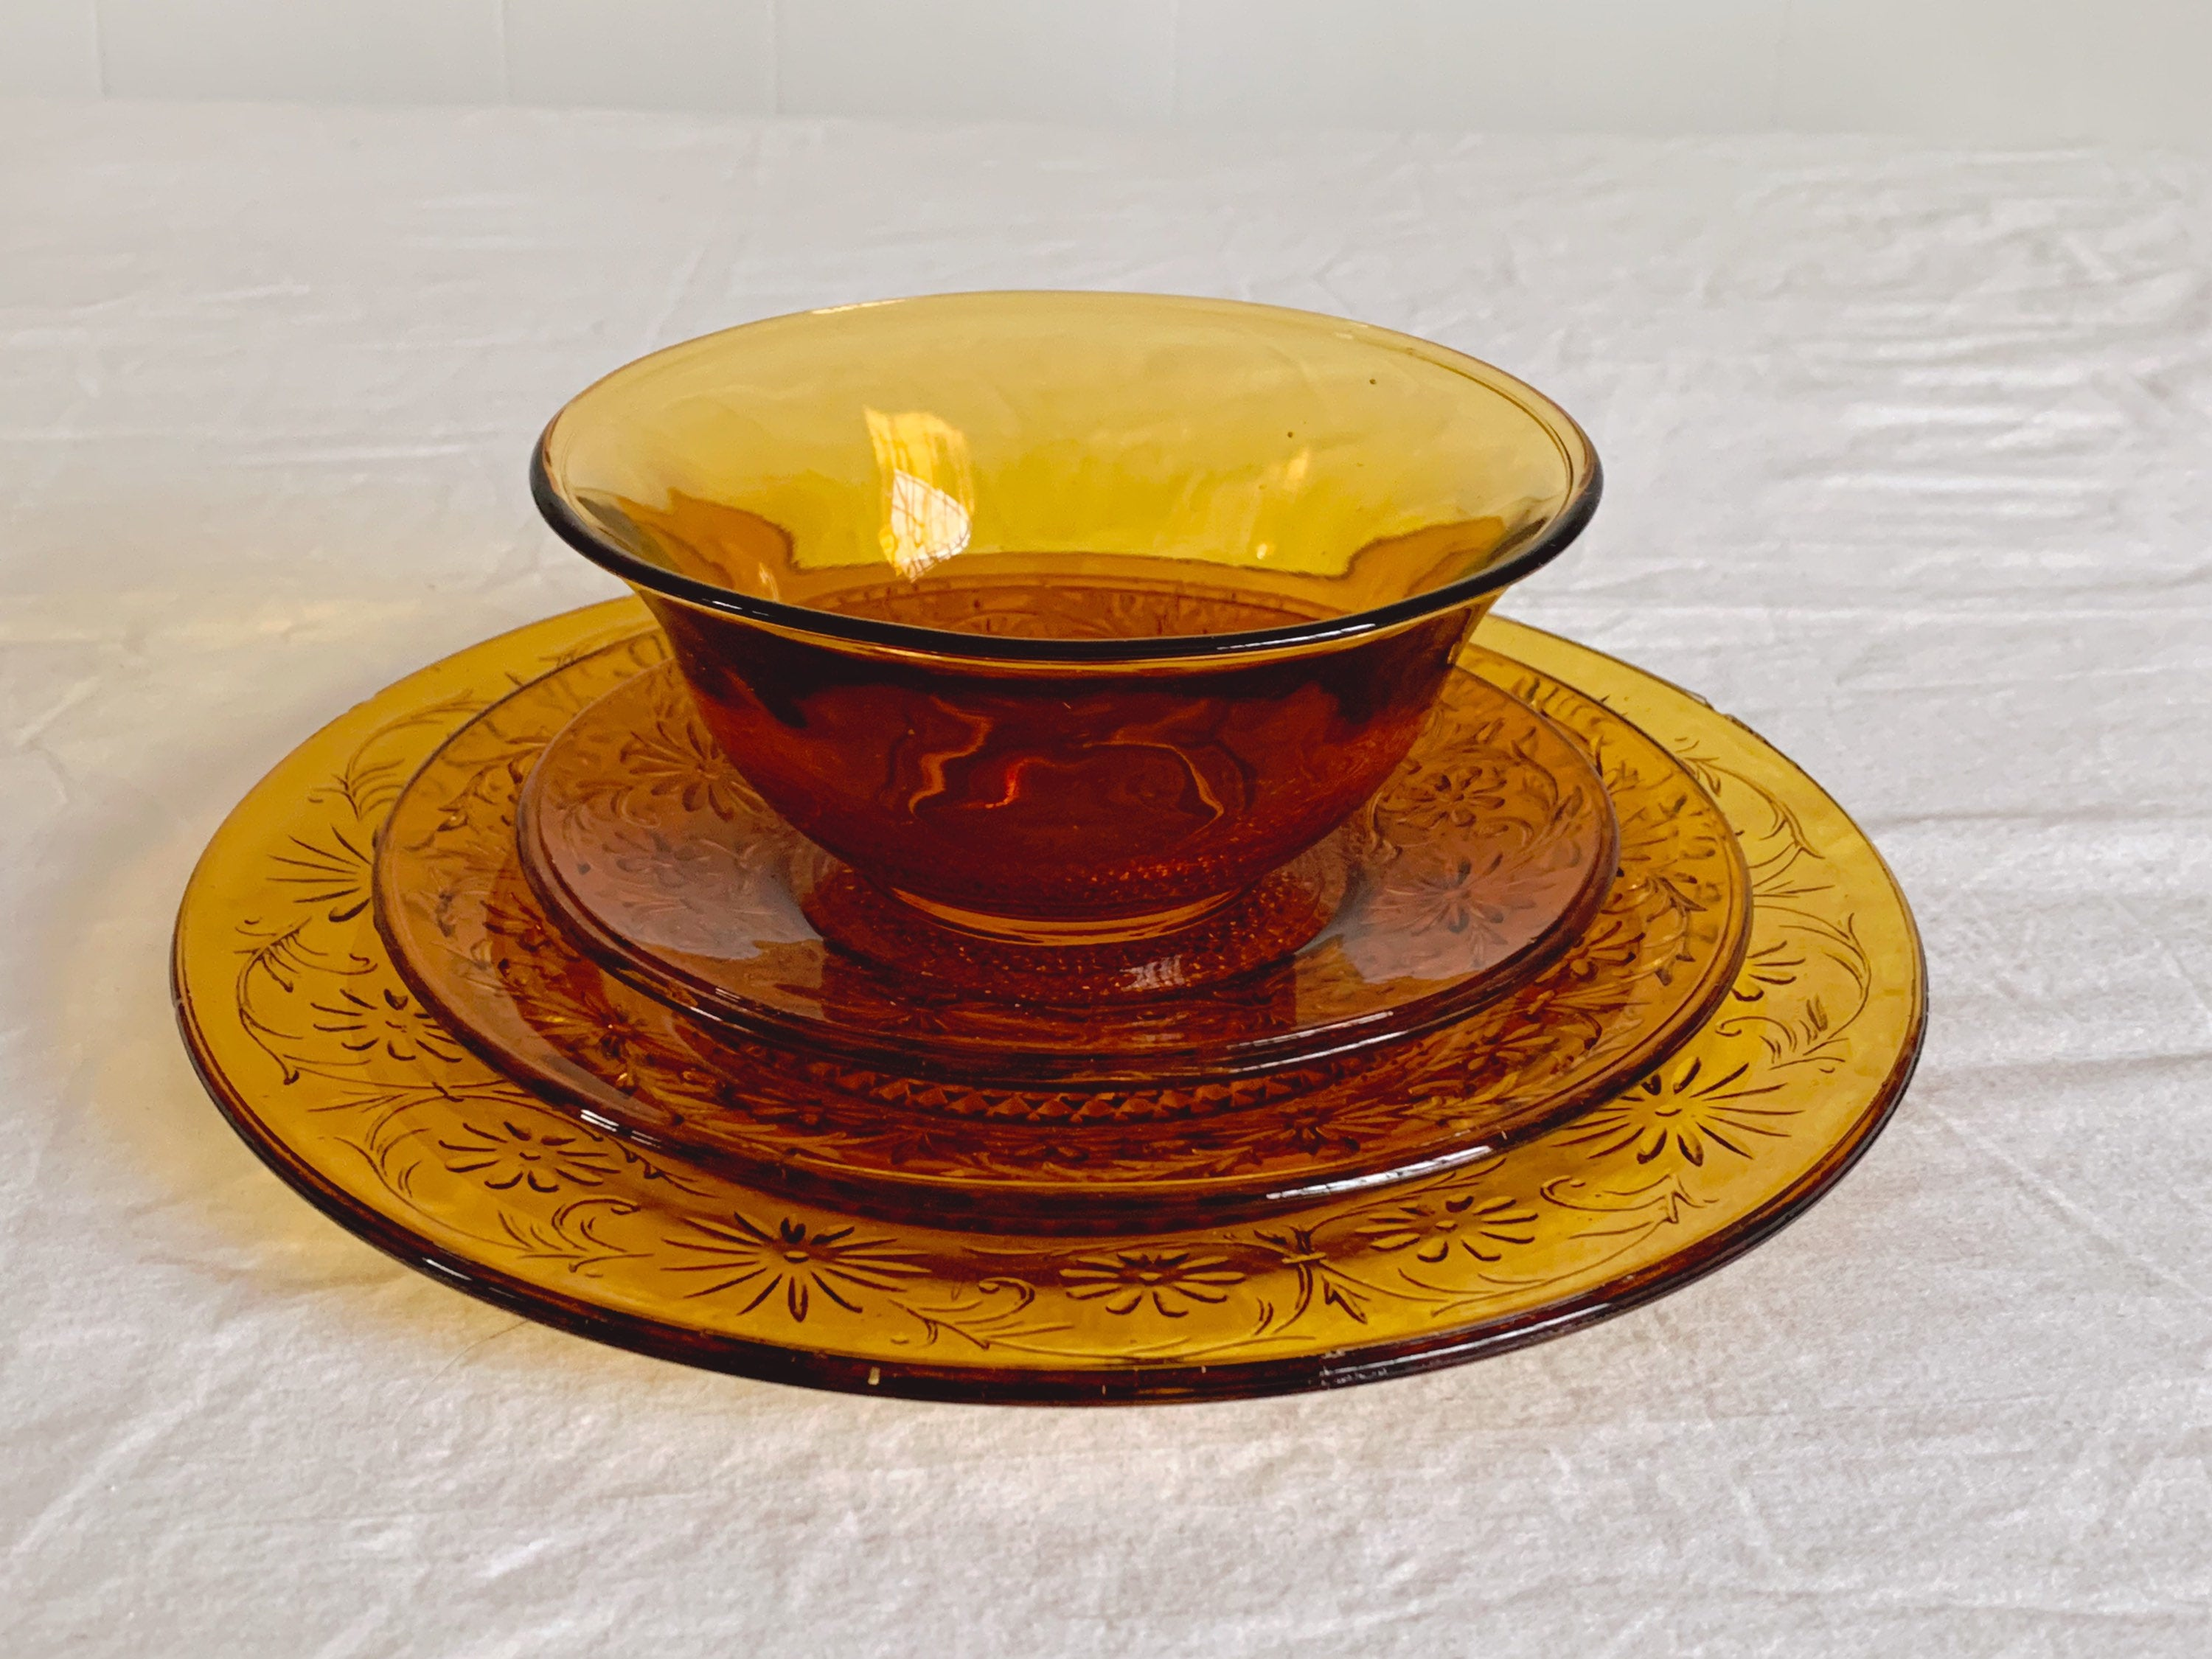 Vintage Amber Depression Glass Plate and Bowl Table Setting In Daisy Pattern | Small, Medium and Large Pressed Glass Plates and Bowl